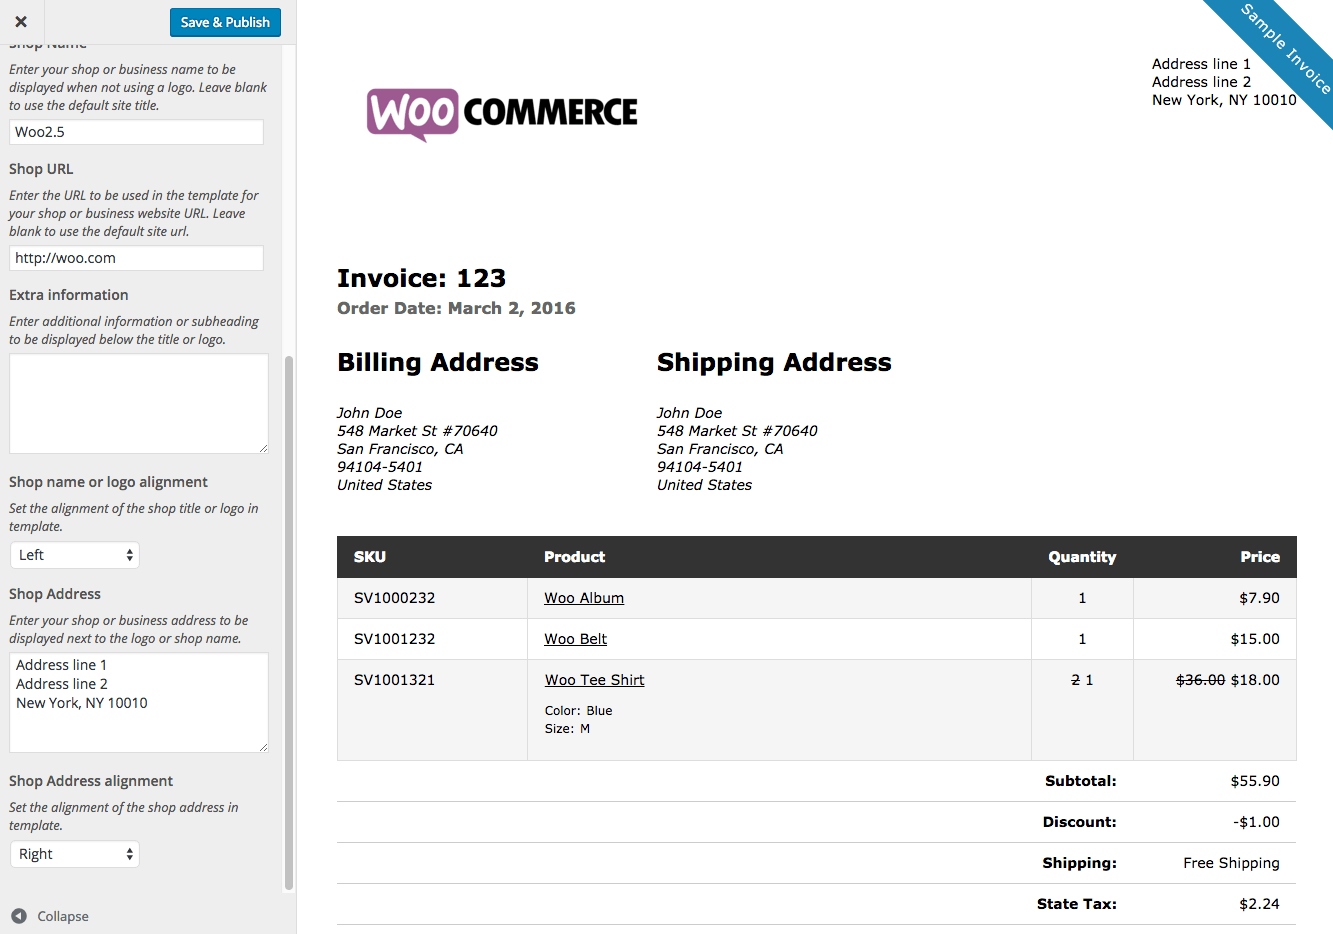 Ultrablogus  Stunning Print Invoices Amp Packing Lists  Woocommerce With Exciting Woocommerce Print Invoices  Packing Lists Customizer With Attractive Sample Consulting Invoice Also In The Invoice Or On The Invoice In Addition Proforma Invoice Export And Truck Invoice Prices As Well As Invoice Price On Cars Additionally Cash Invoice Receipt From Woocommercecom With Ultrablogus  Exciting Print Invoices Amp Packing Lists  Woocommerce With Attractive Woocommerce Print Invoices  Packing Lists Customizer And Stunning Sample Consulting Invoice Also In The Invoice Or On The Invoice In Addition Proforma Invoice Export From Woocommercecom